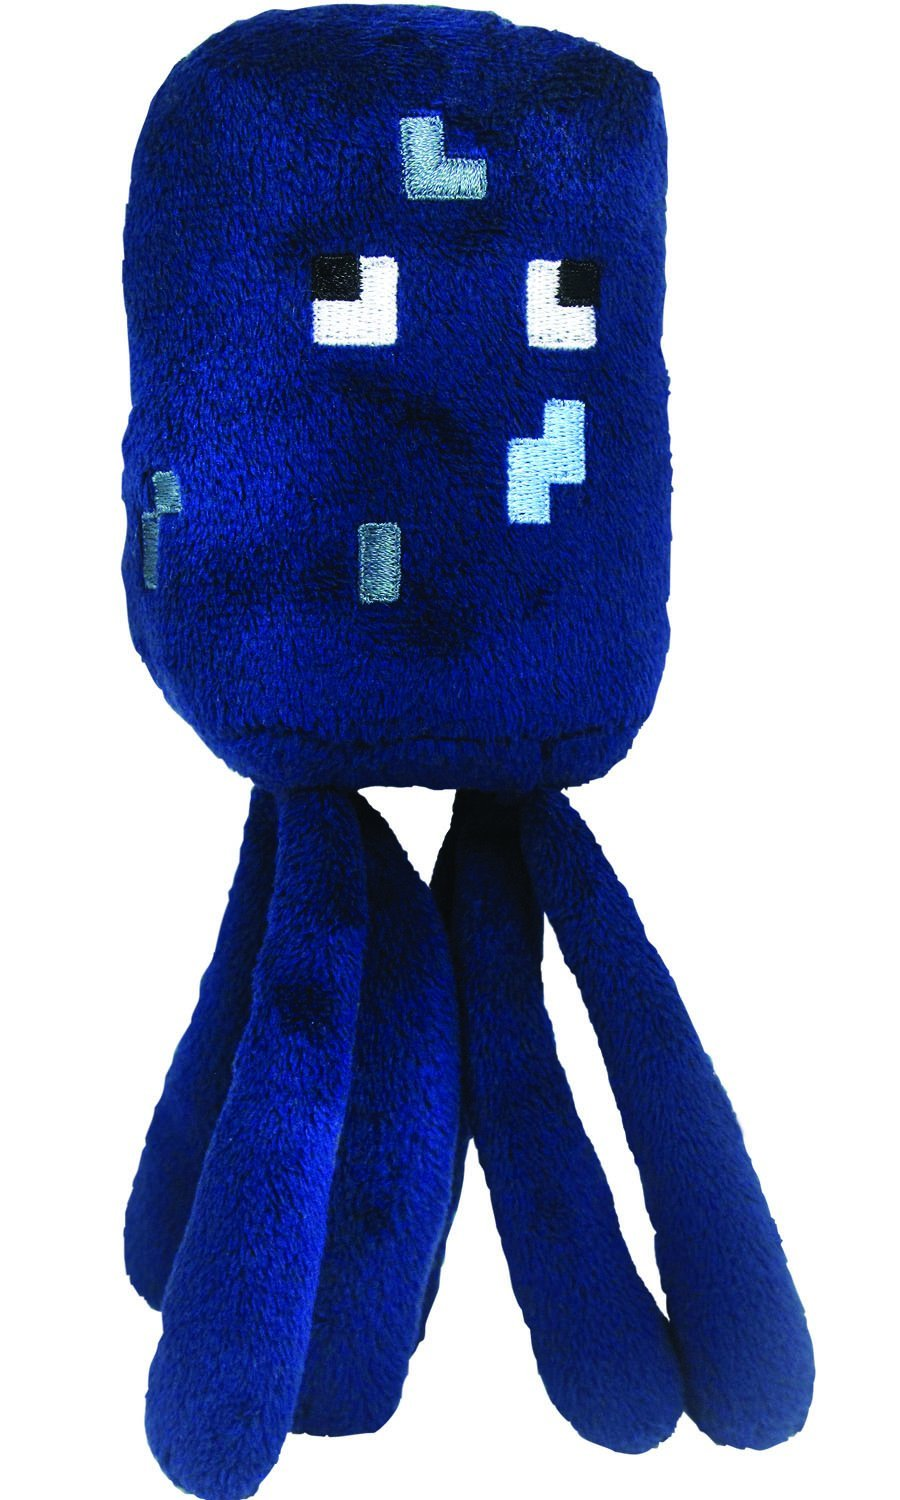 Minecraft 7-Inch Squid Animal Plush Toy Character Options 16532